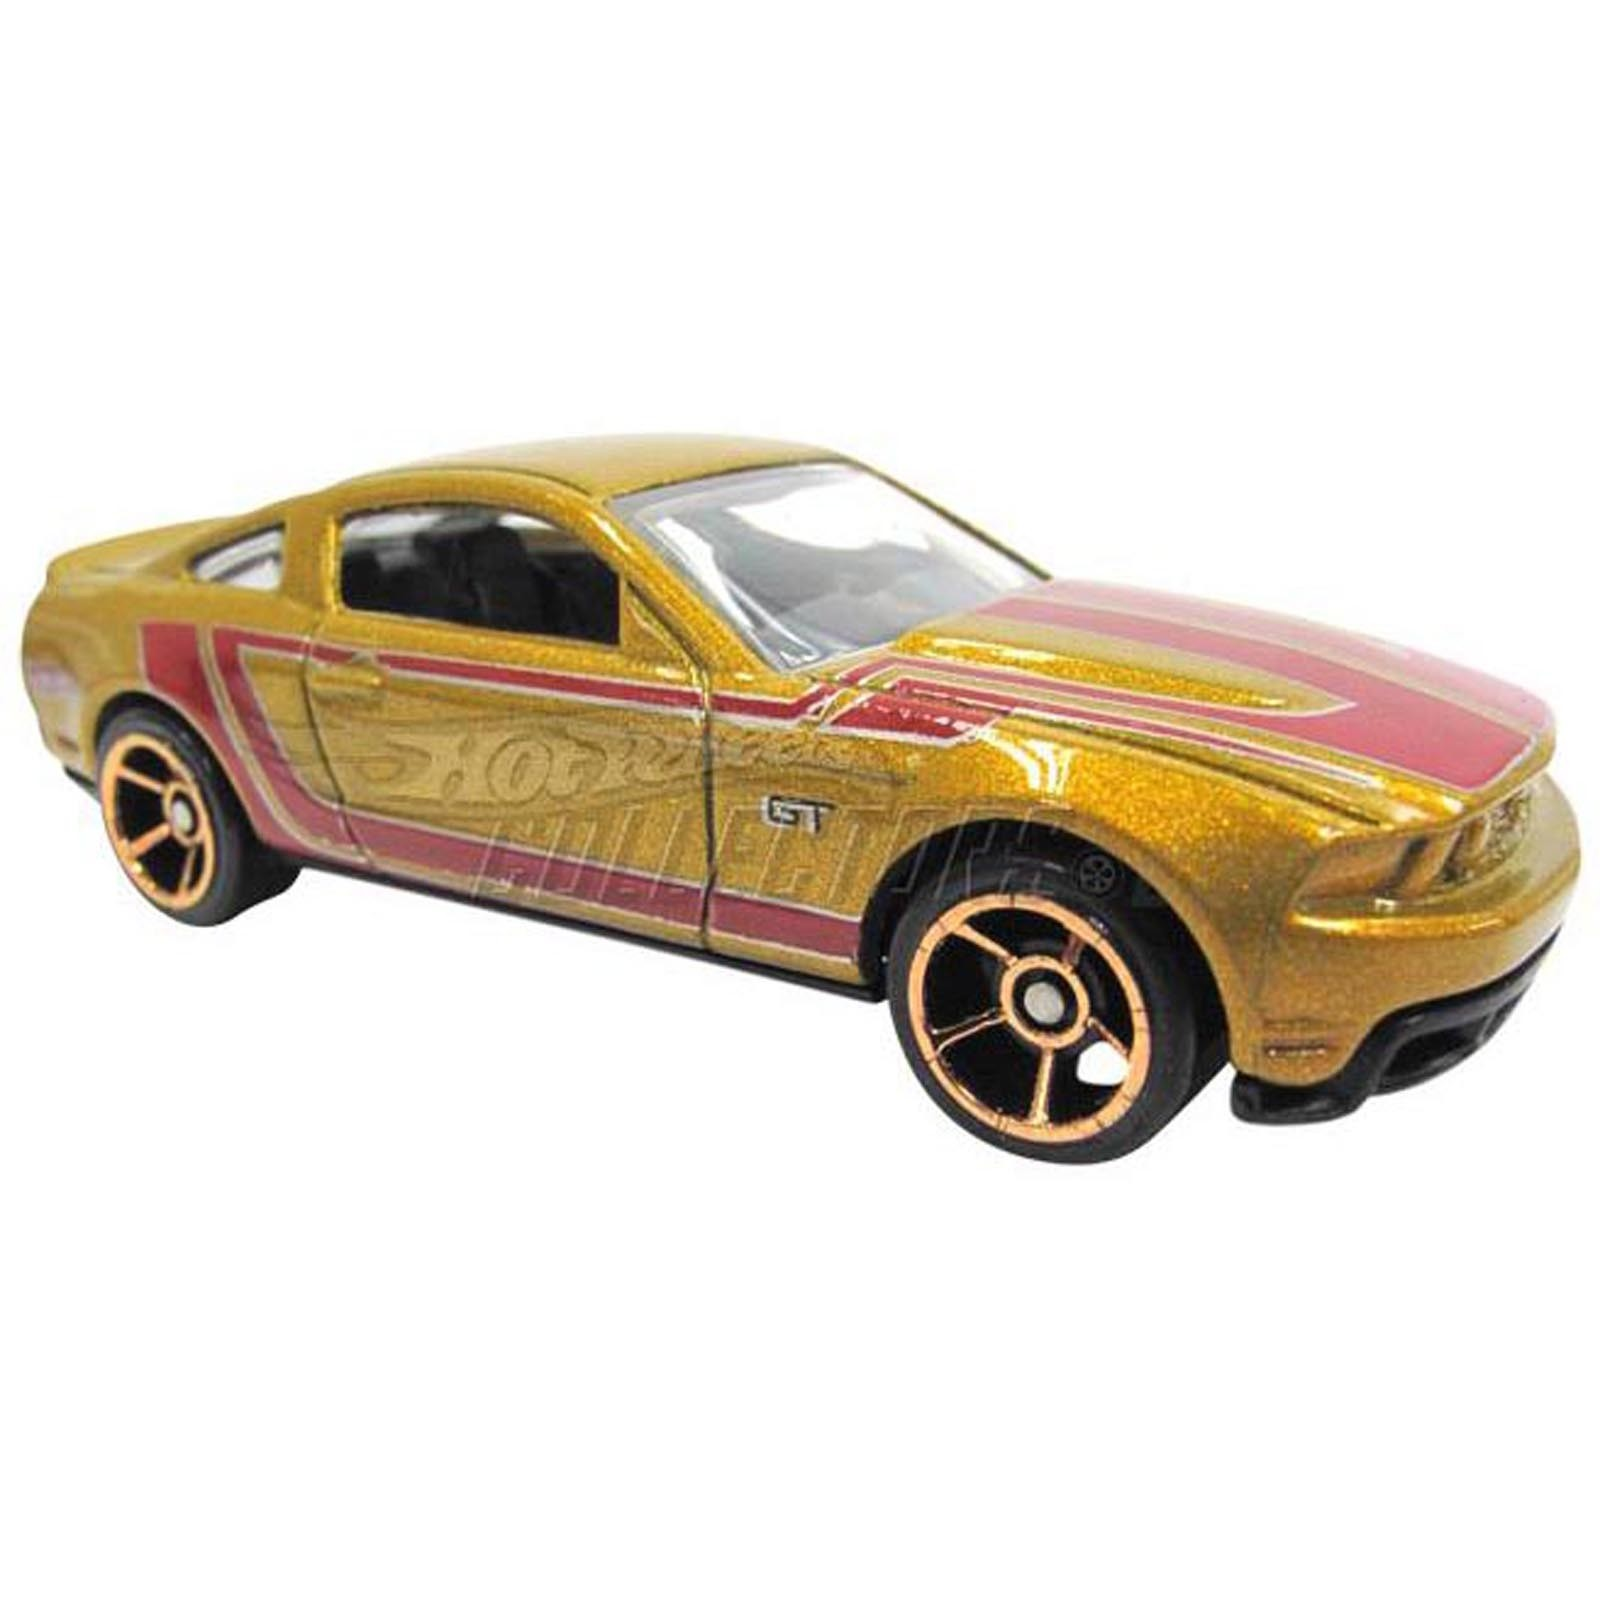 Hot Wheels - 2010 Ford Mustang GT - T9851